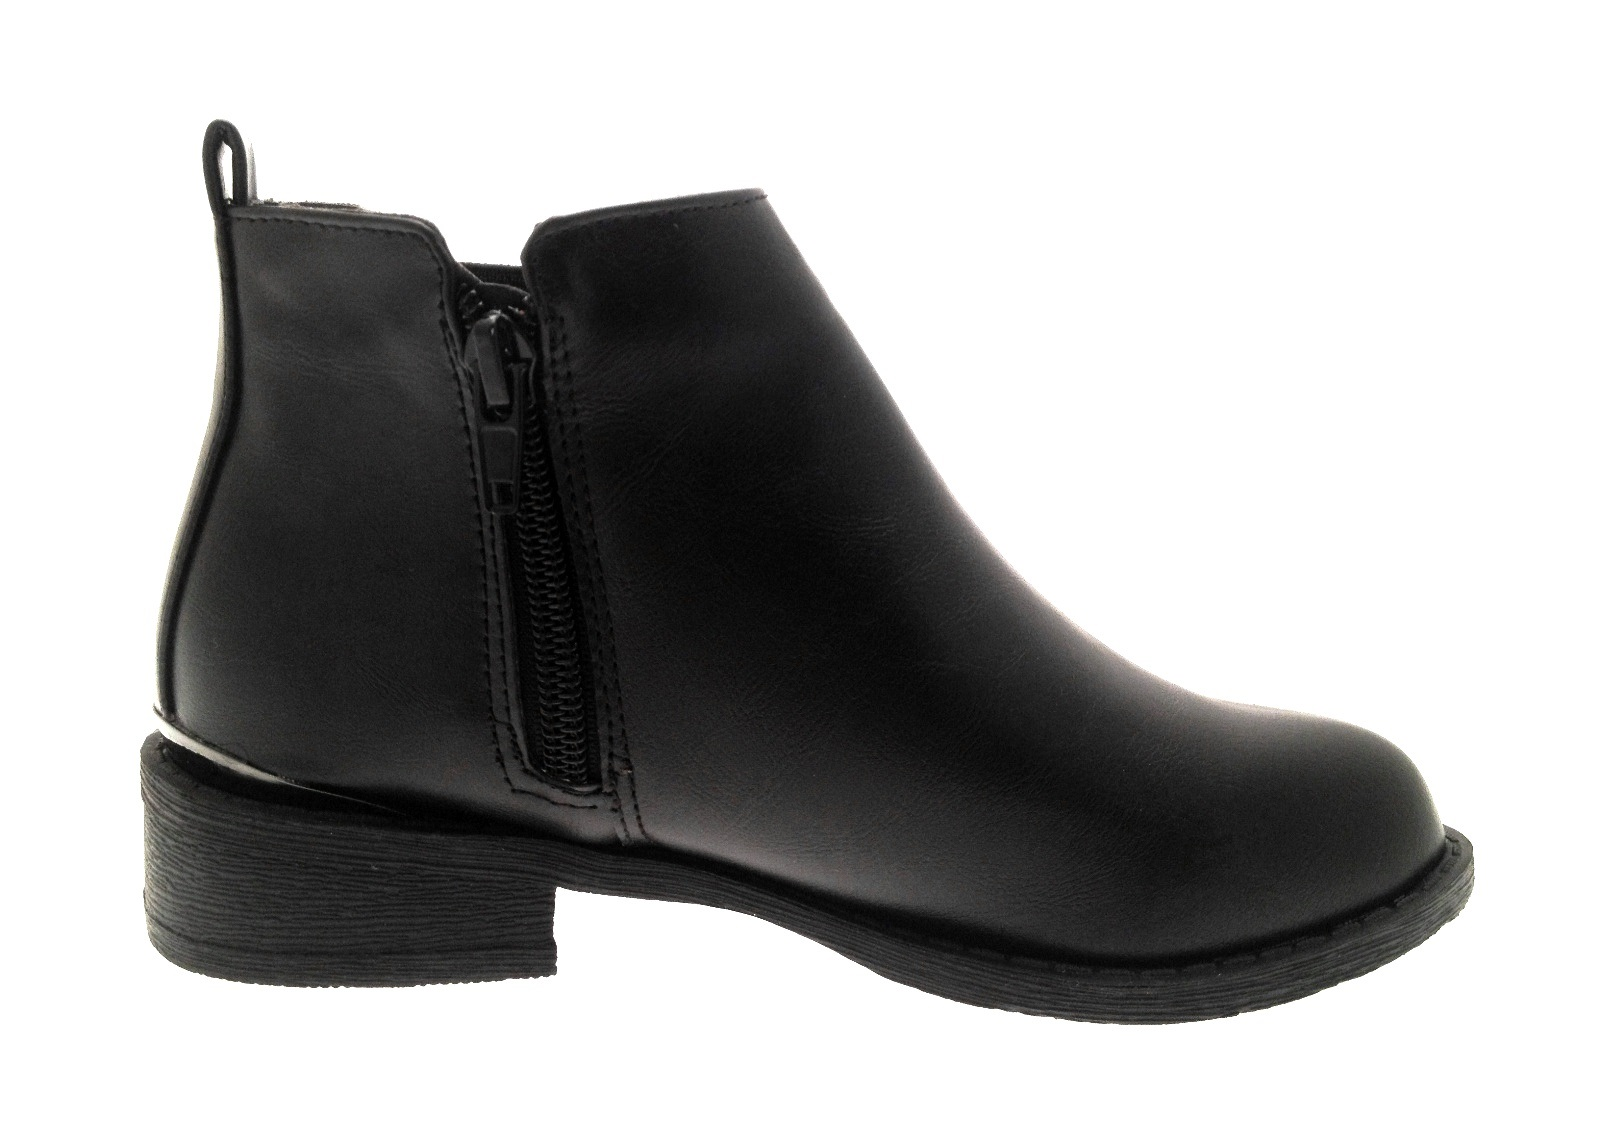 Girls Kids Faux Leather Chelsea Ankle Boots Casual Black School Shoes Size 9-3 | EBay